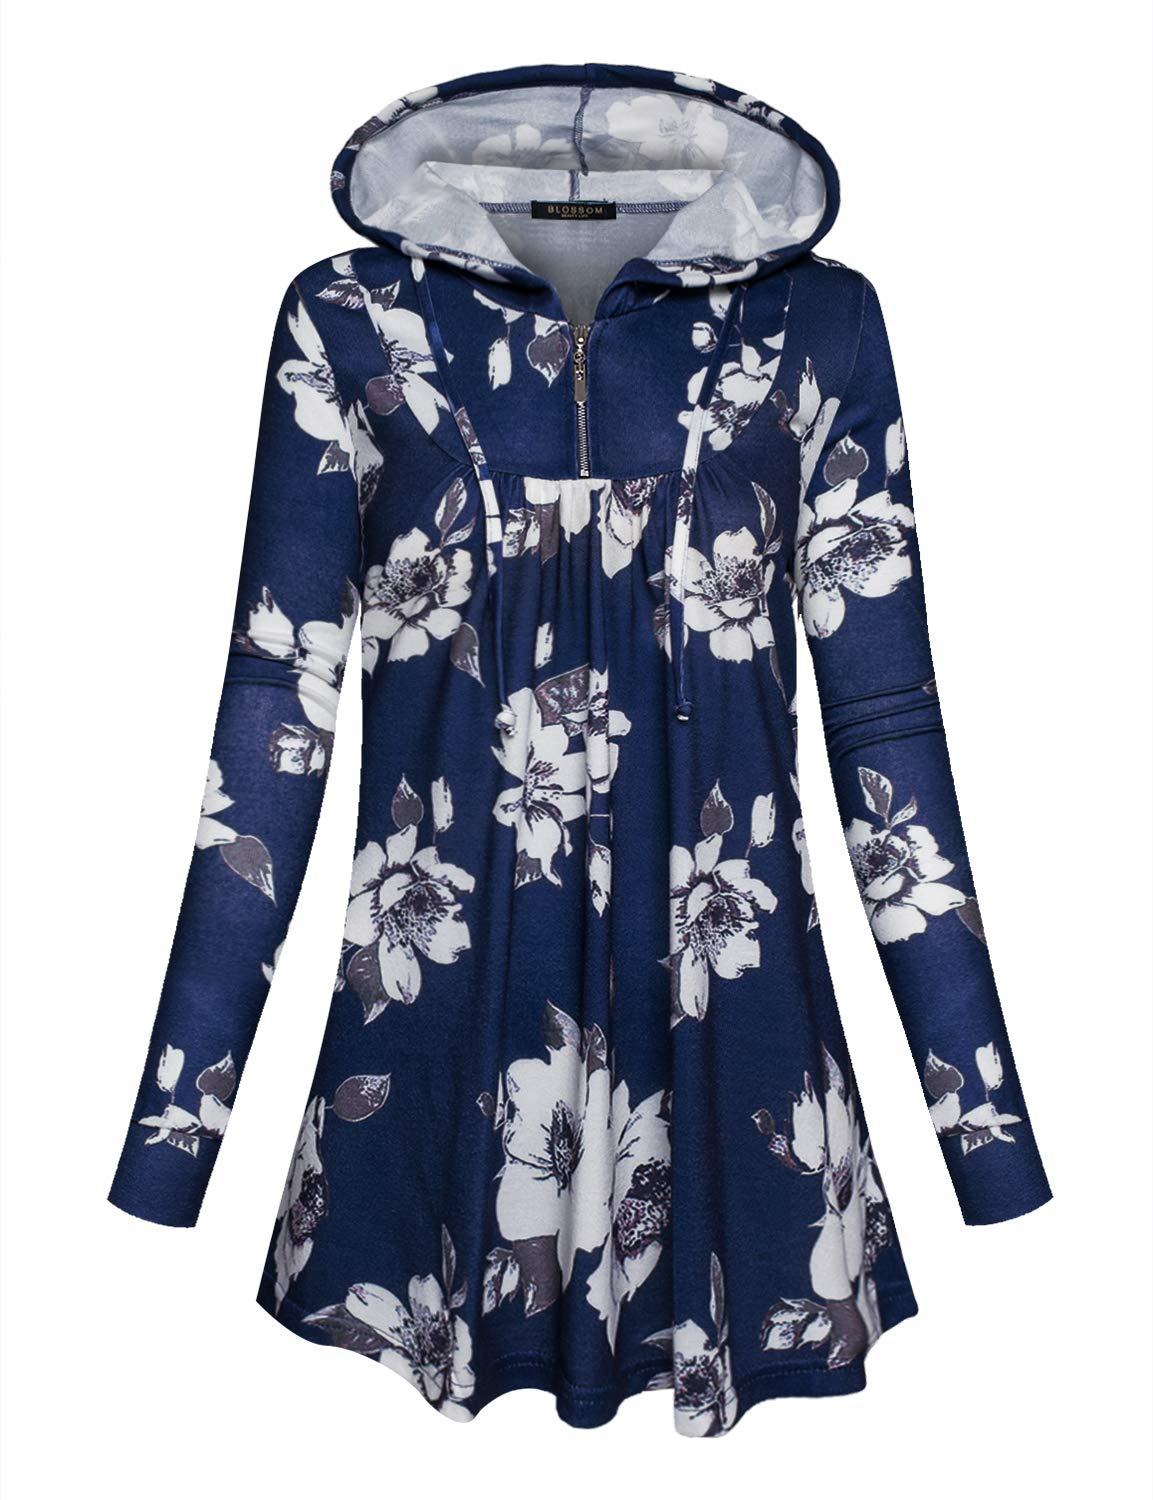 blossom smile Women's V Neck Zipper Casual Floral Print Hoodies Pullover Sweatshirt with Pockets (Large, Blue) - wiihuu